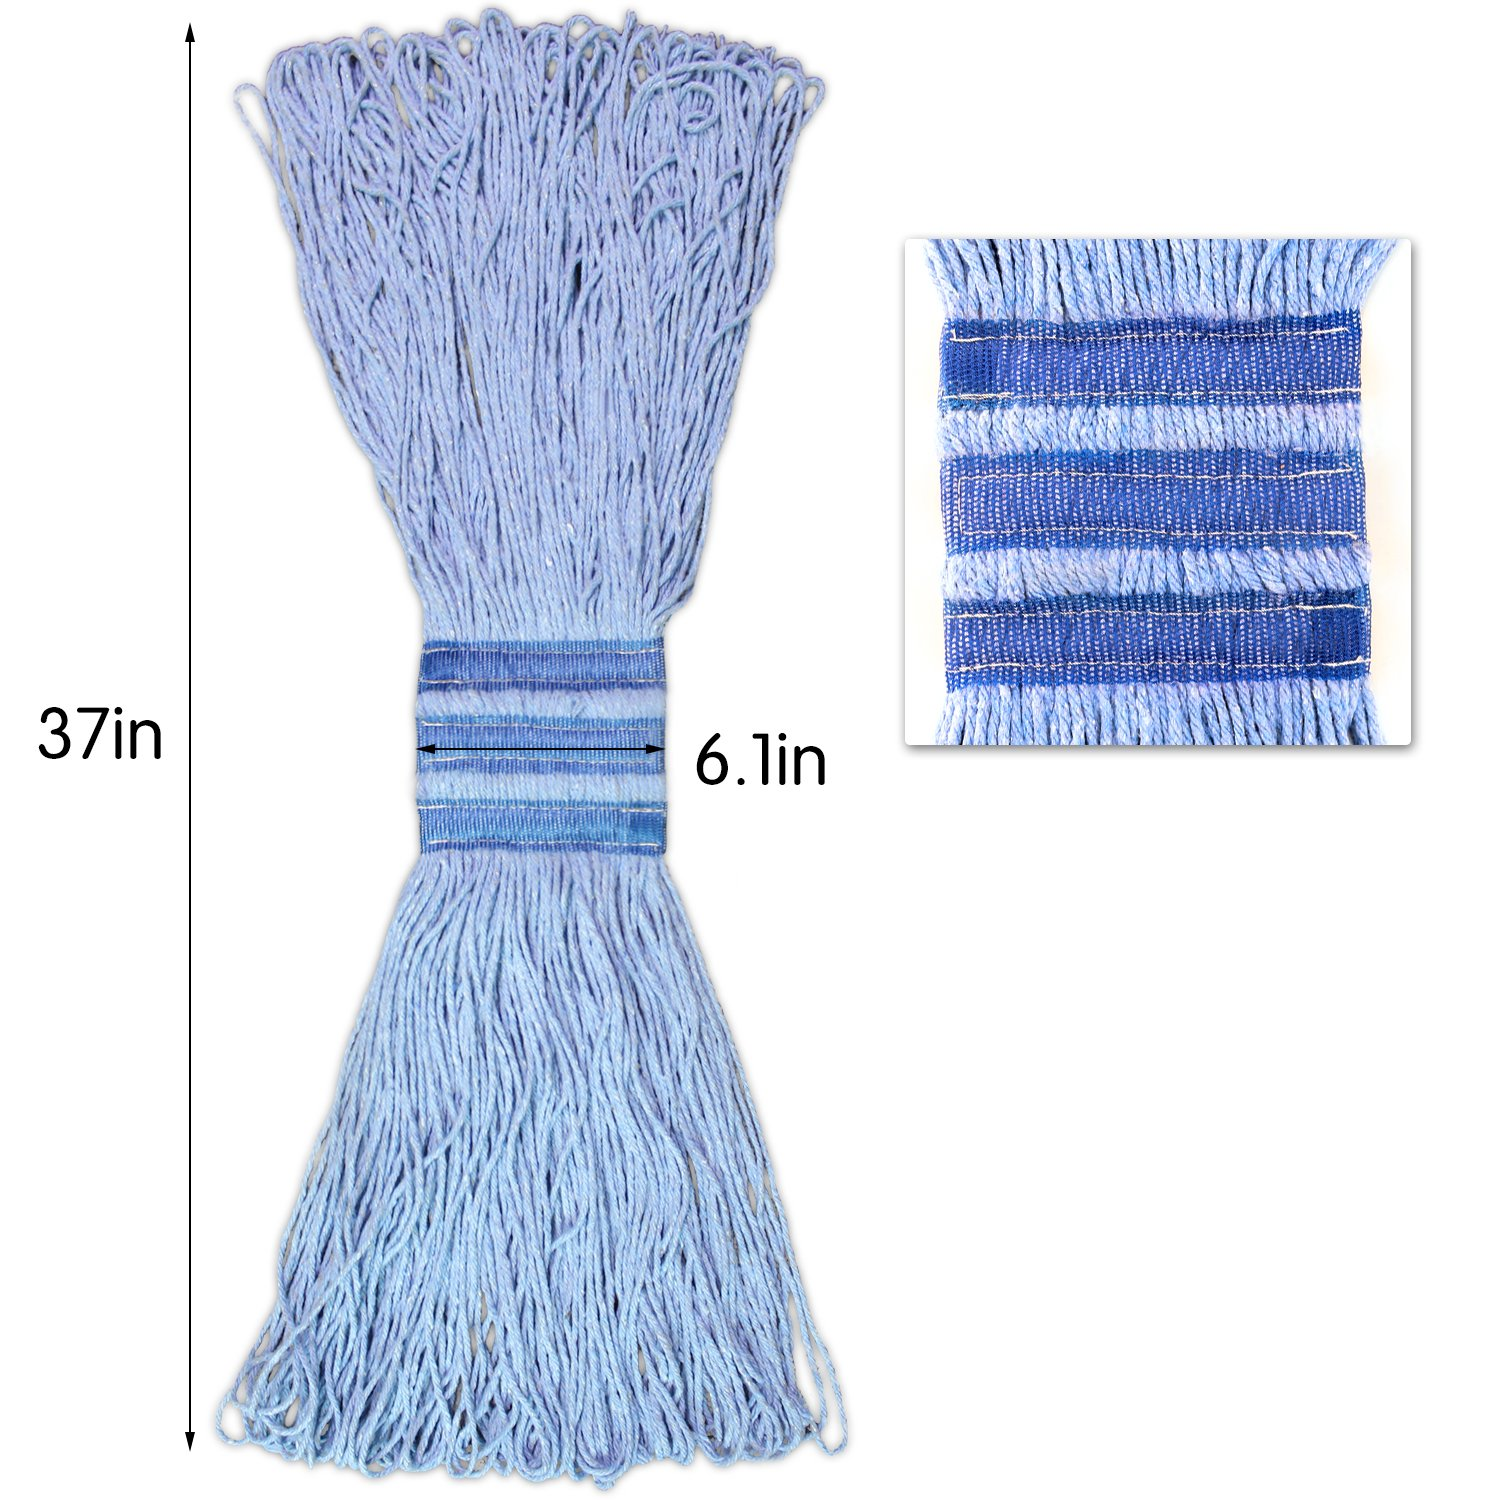 Bonison 24 oz Cotton Easy Wring Saddle Mop Head Refill, 24 oz Heavy Duty Looped-End String Swinger Style Replacement Mop Head, for Home, Commercial, and Industrial Use (Blue, 24 oz) by Bonison (Image #4)